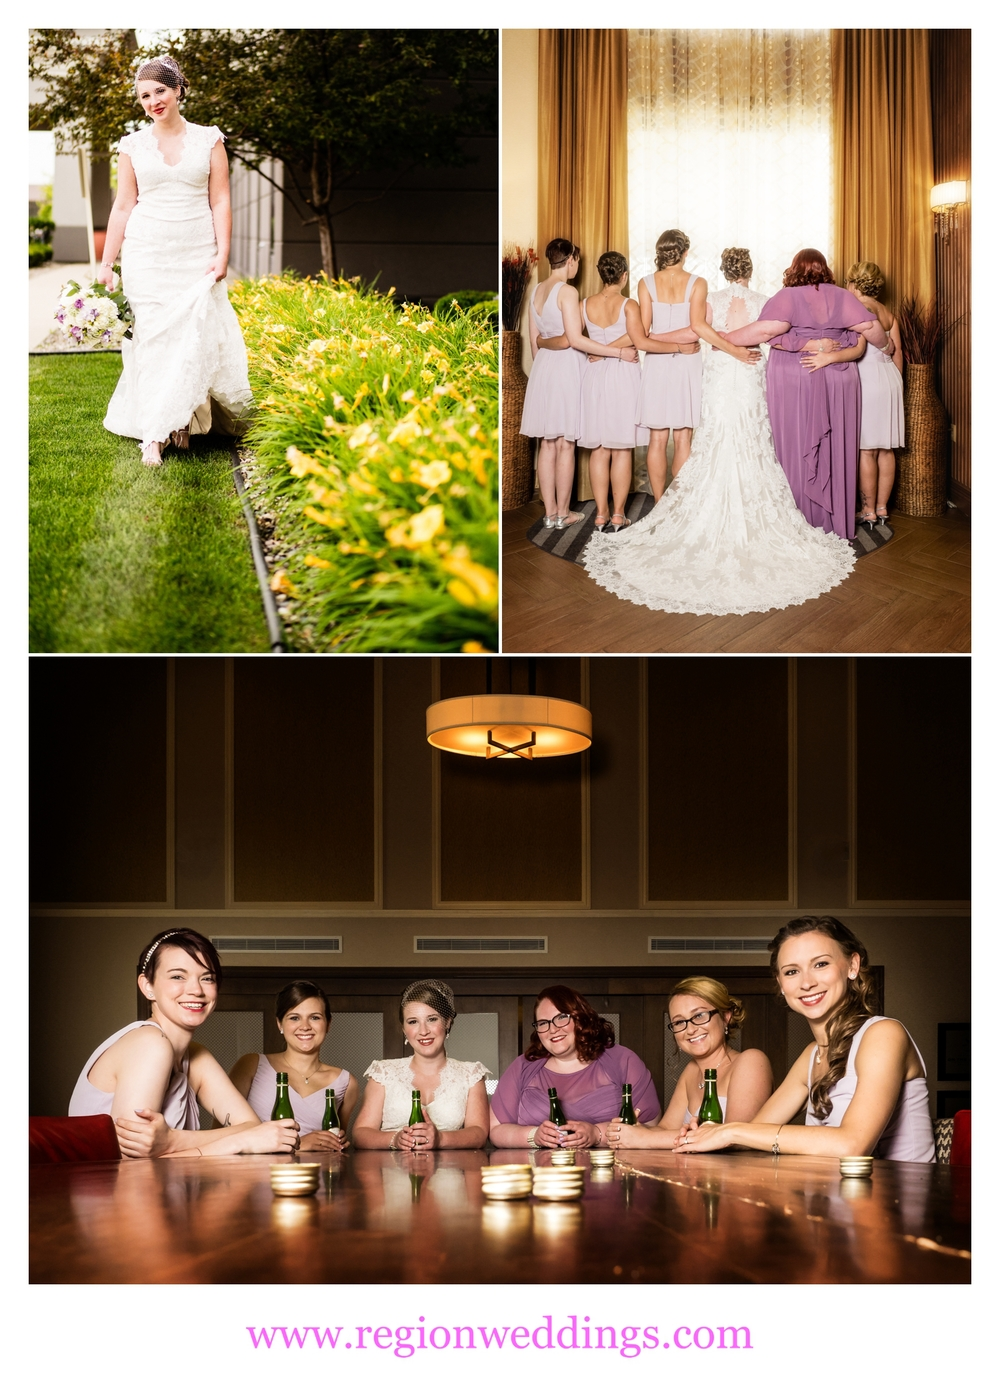 Bridesmaids wedding photos in Munster, Indiana.